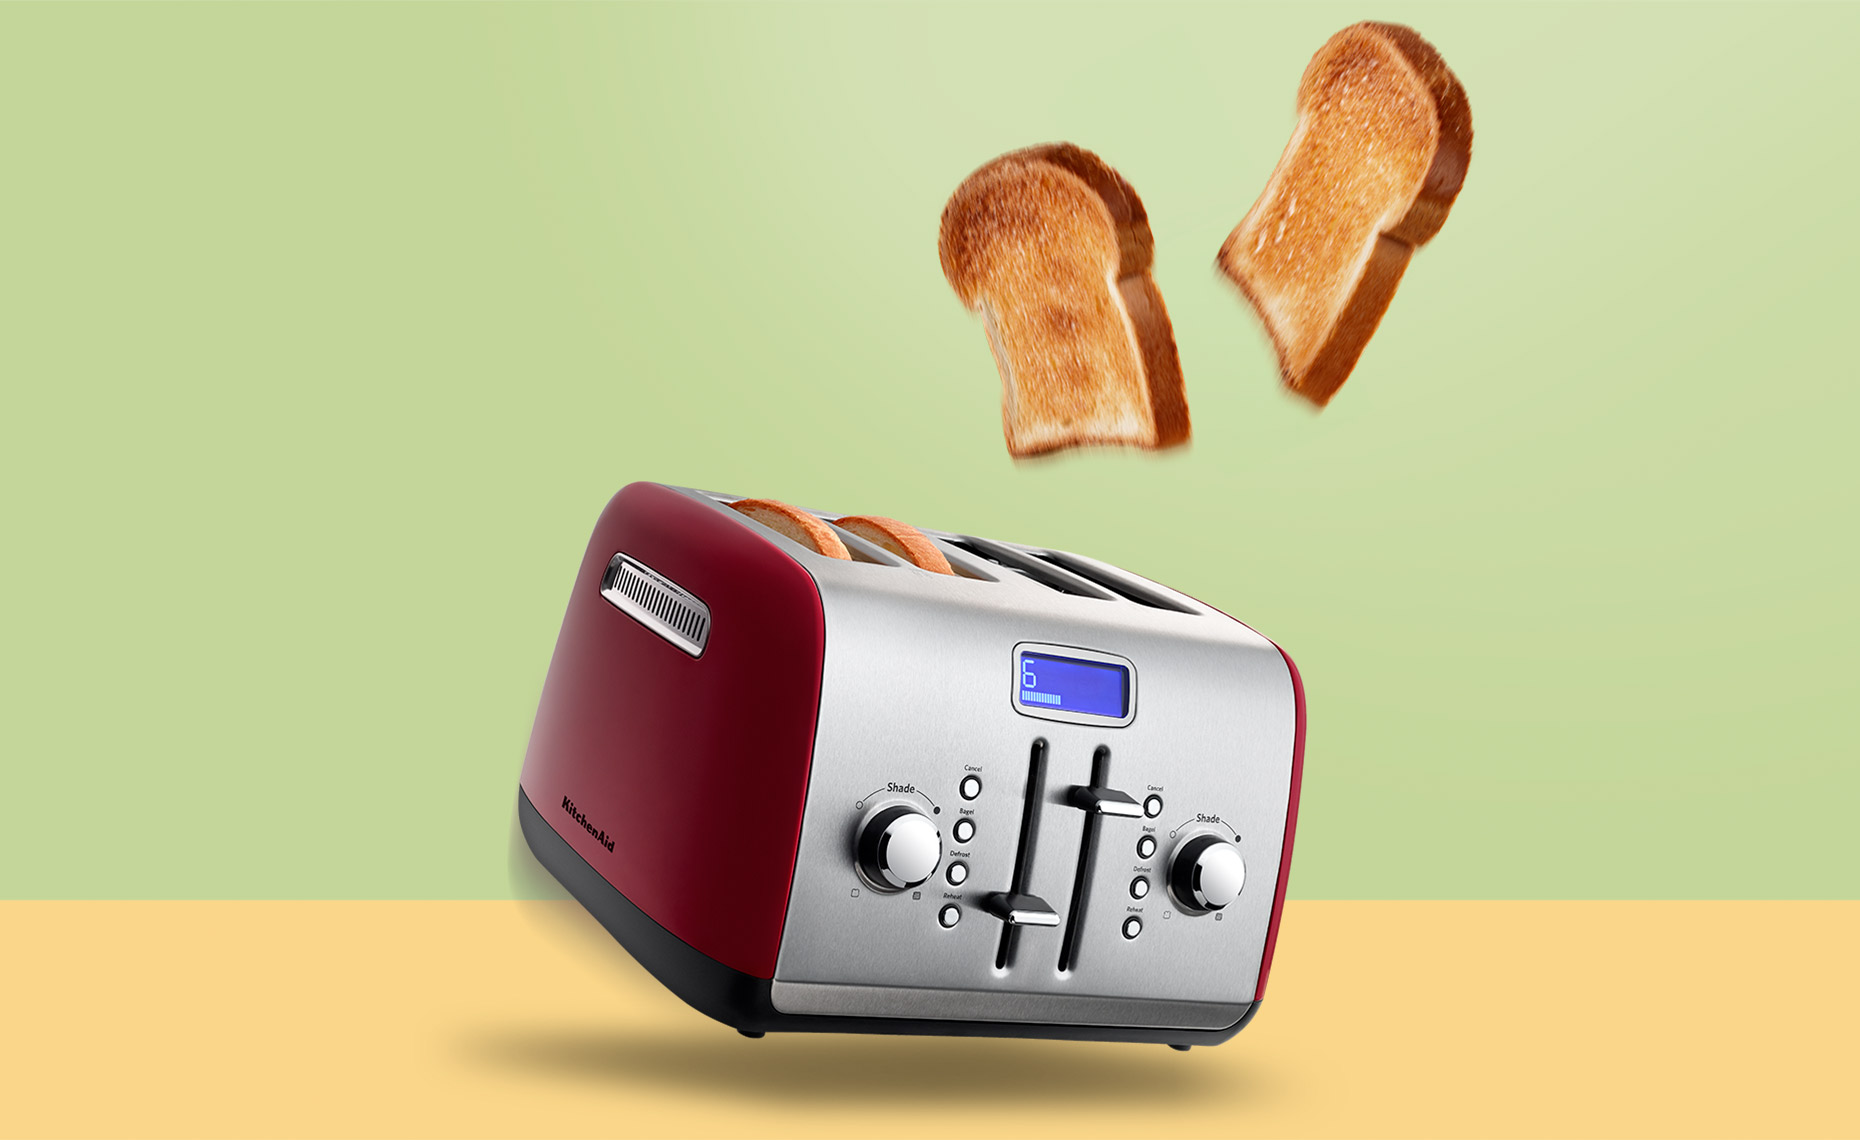 toaster project